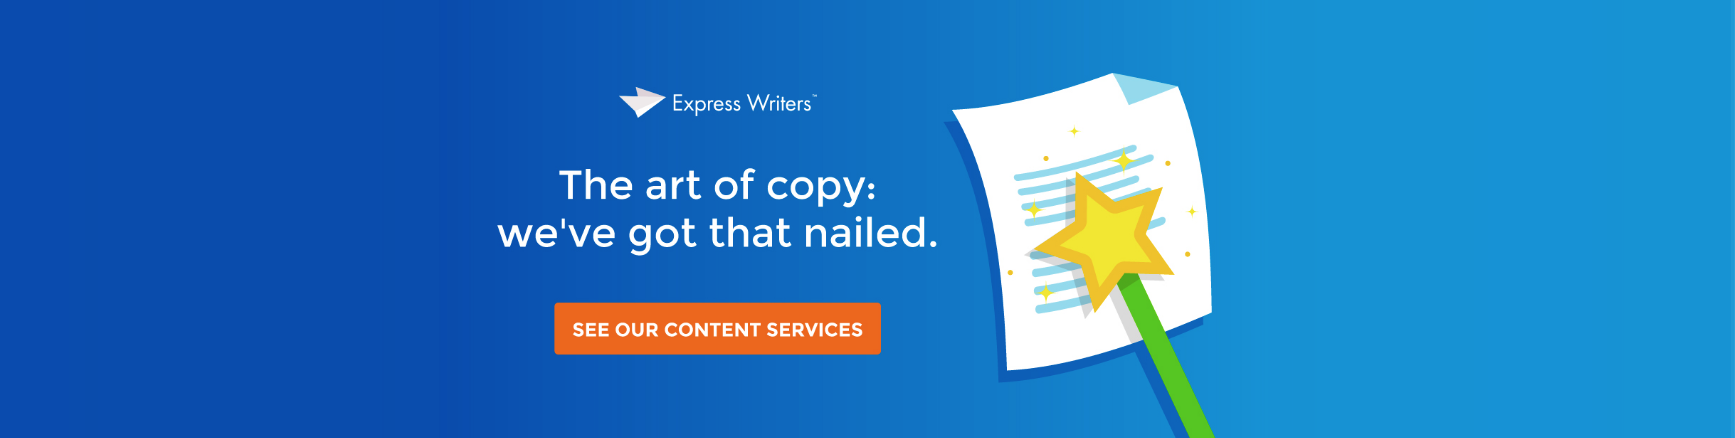 art of copy express writers